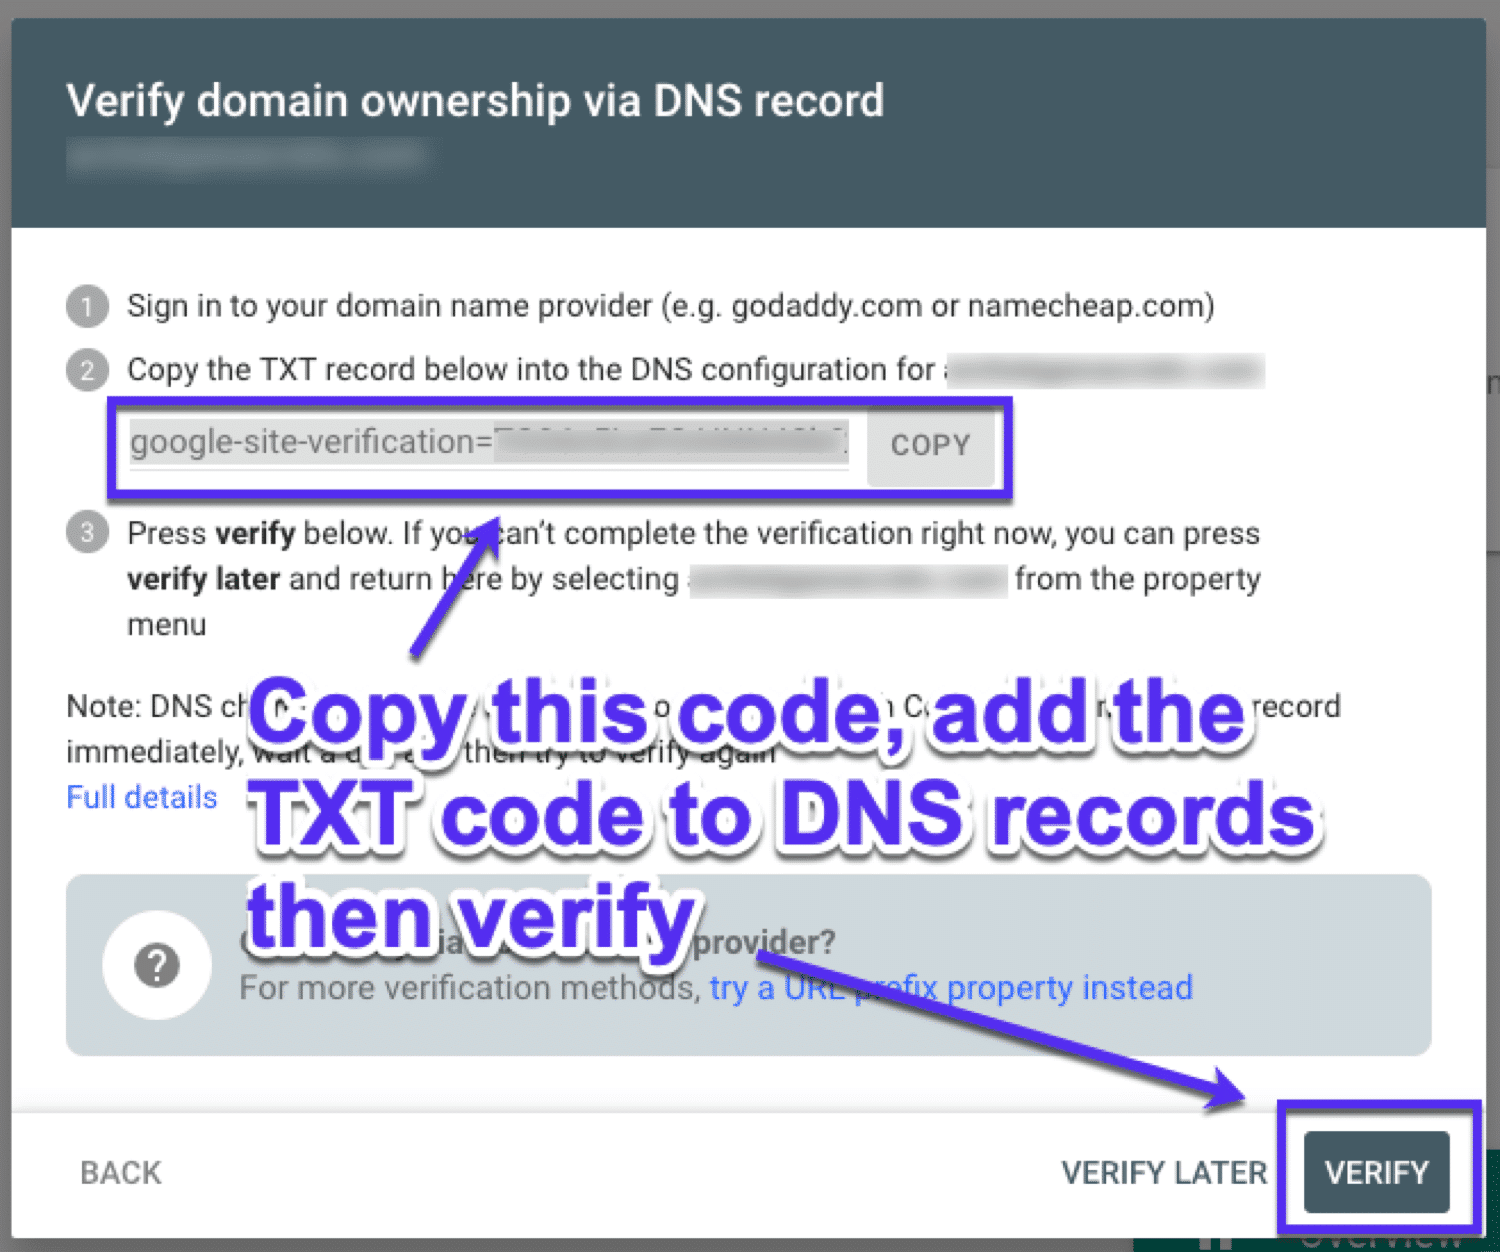 How to verify domain ownership using DNS records